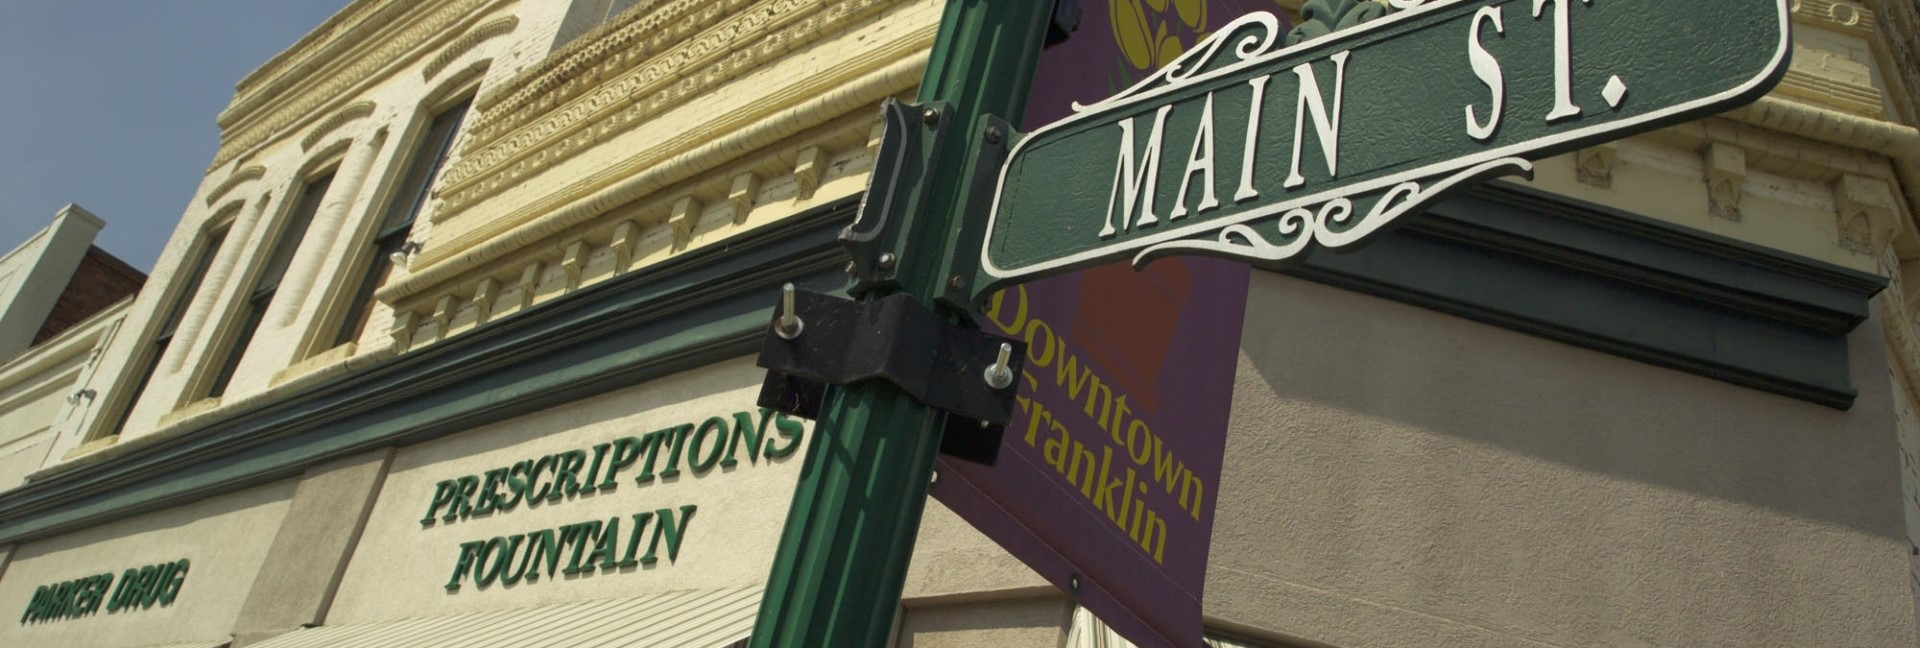 historic-downtown-franklin-main-street-sign